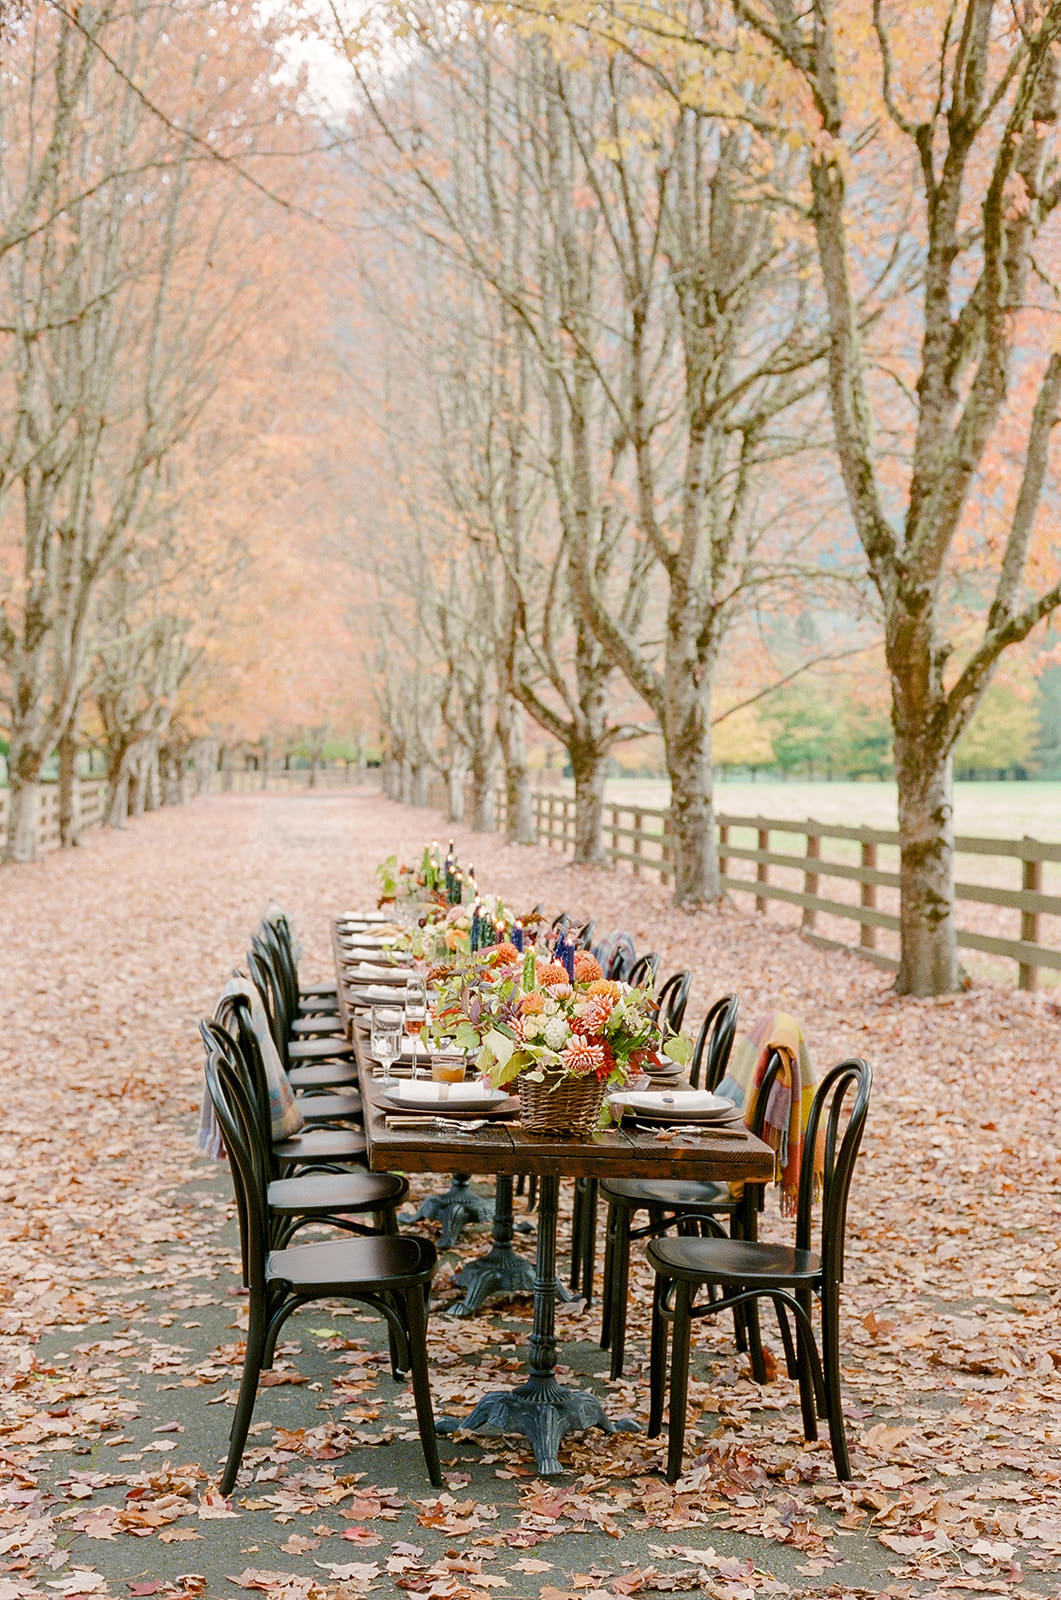 entertaining at home :: cozy fall tabletop